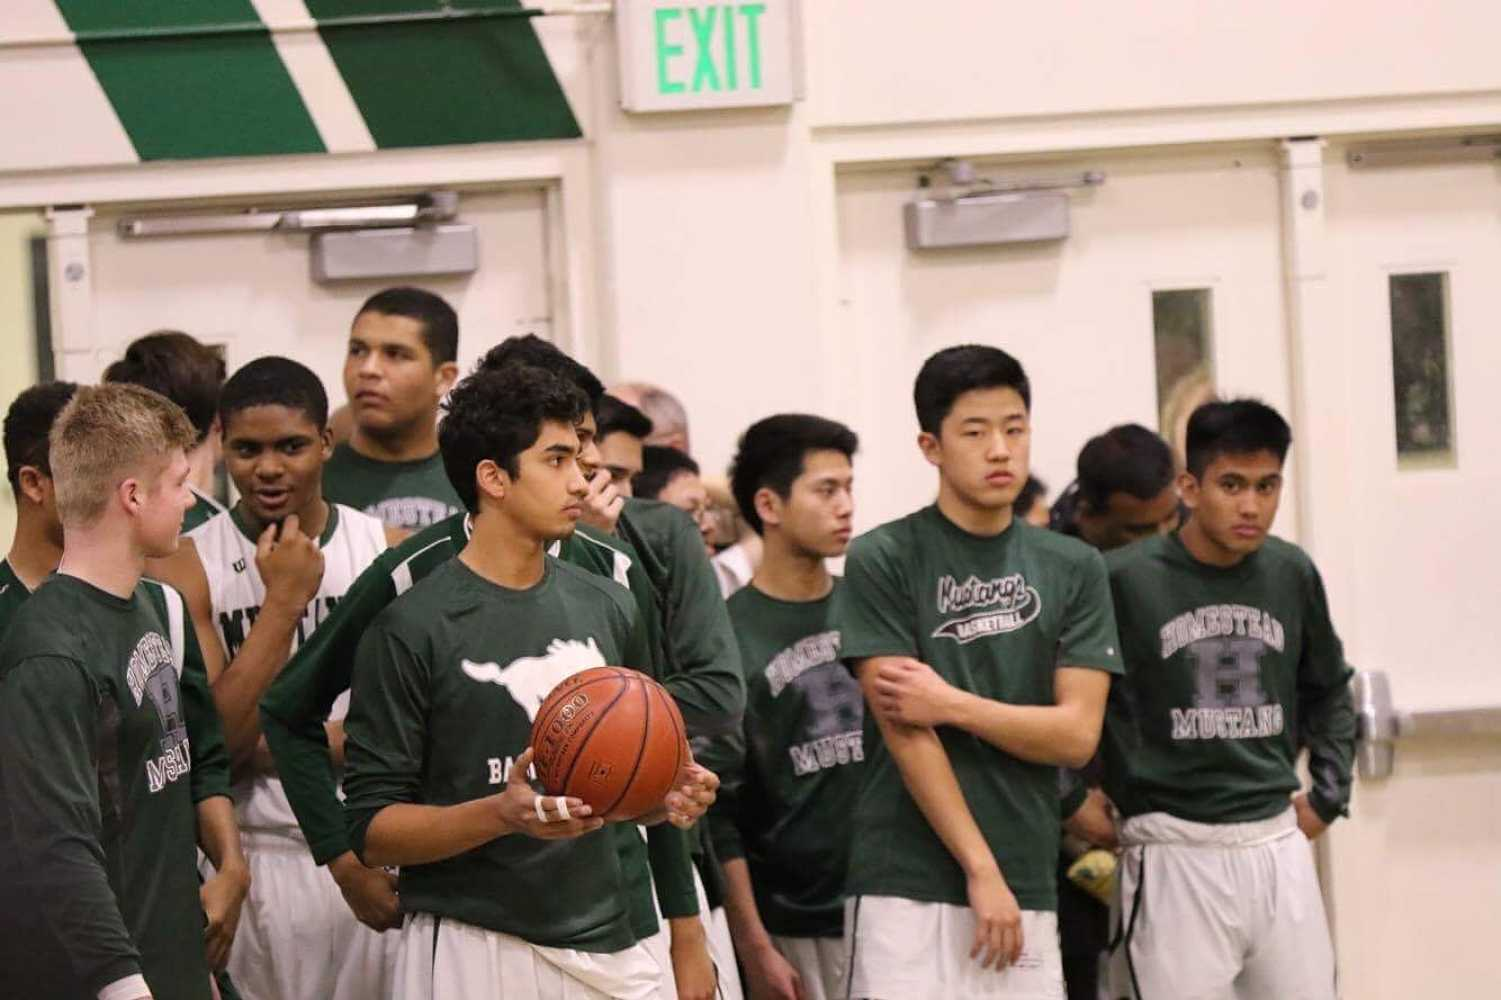 HHS boys varsity team loses CCS game to IHS with a final score of 59-57.